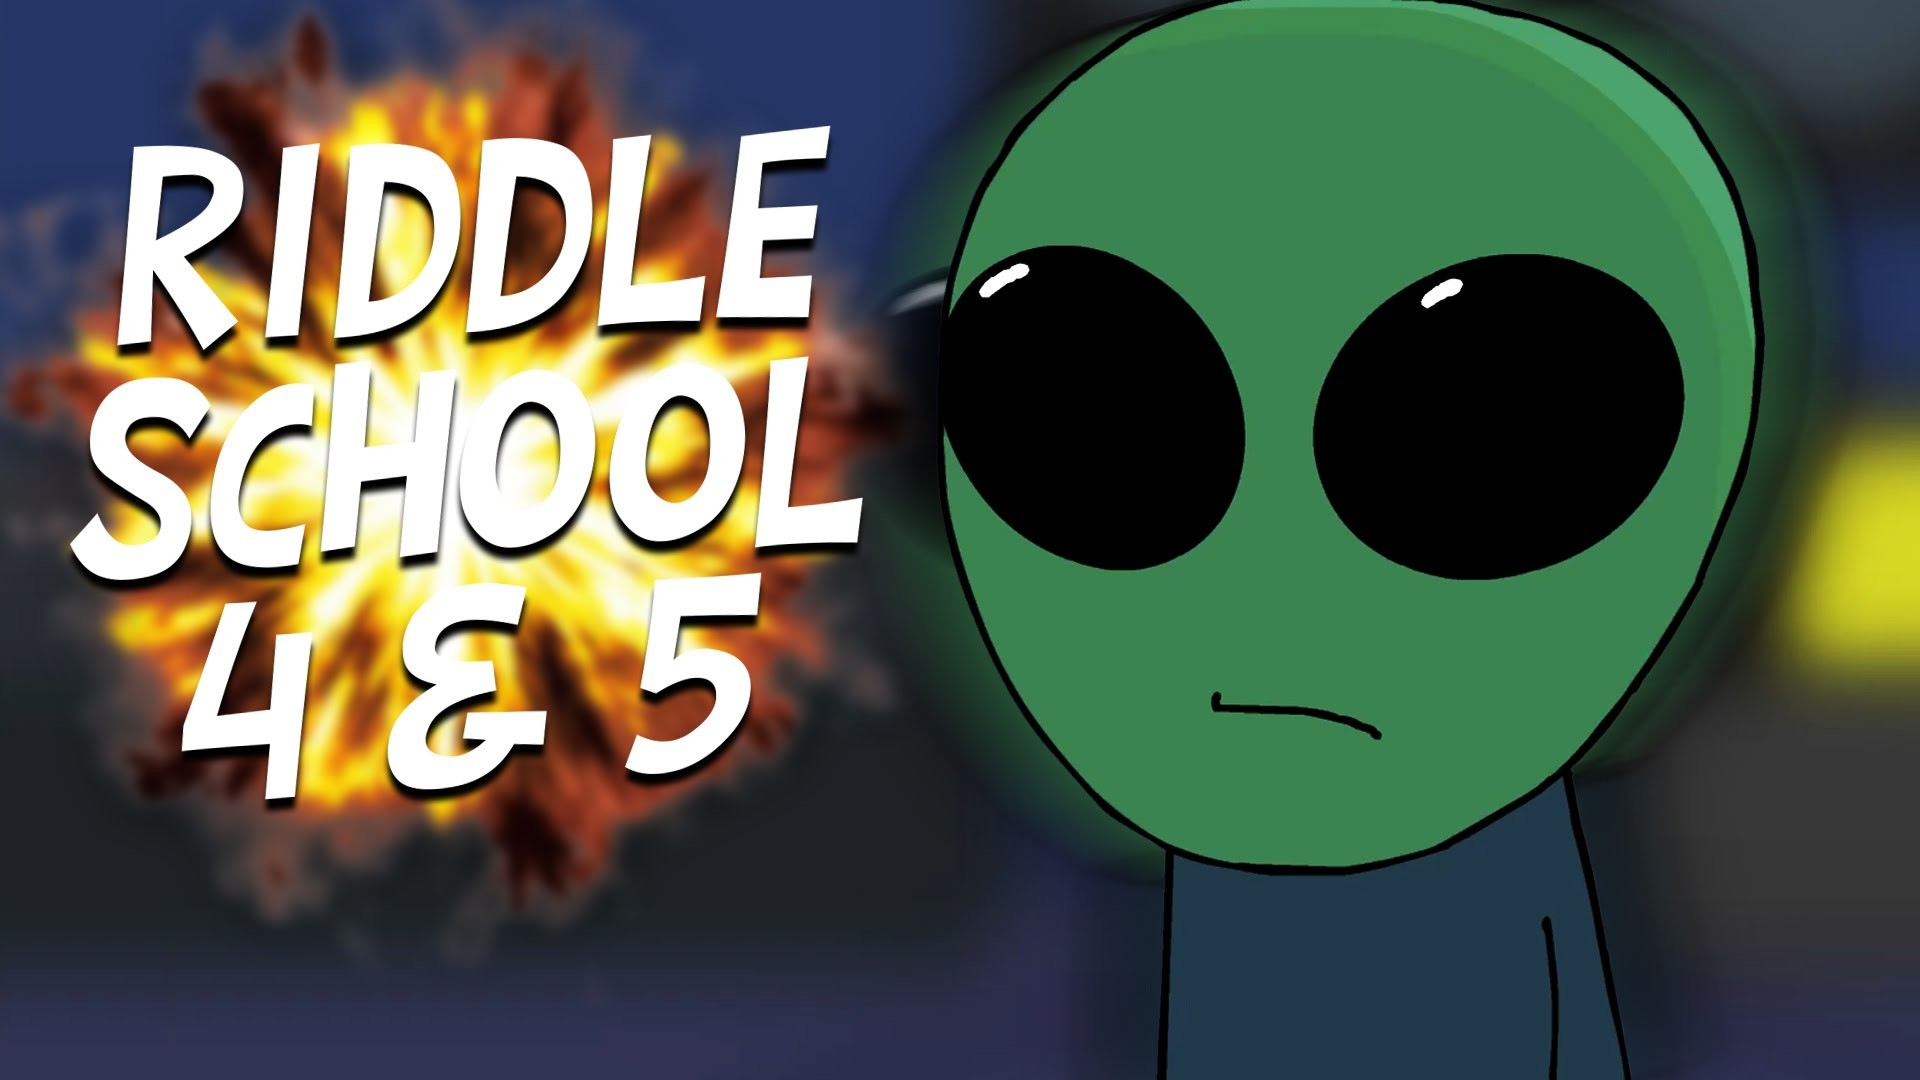 1920x1080 Riddle School images Diz (Jacksepticeye thumbnail) HD wallpaper and  background photos